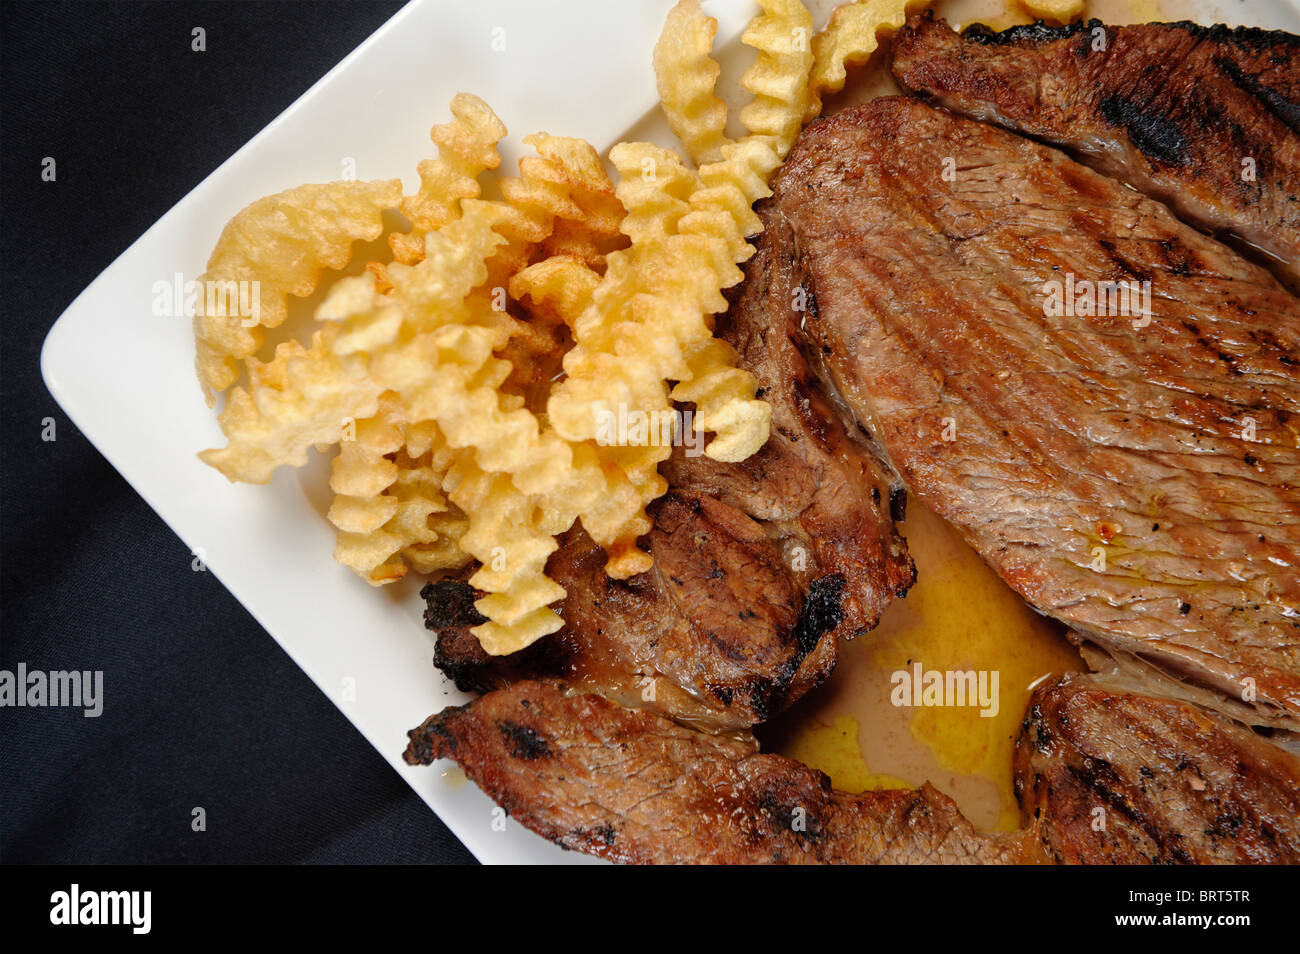 Detail shot of grilled steak with french fries - Stock Image